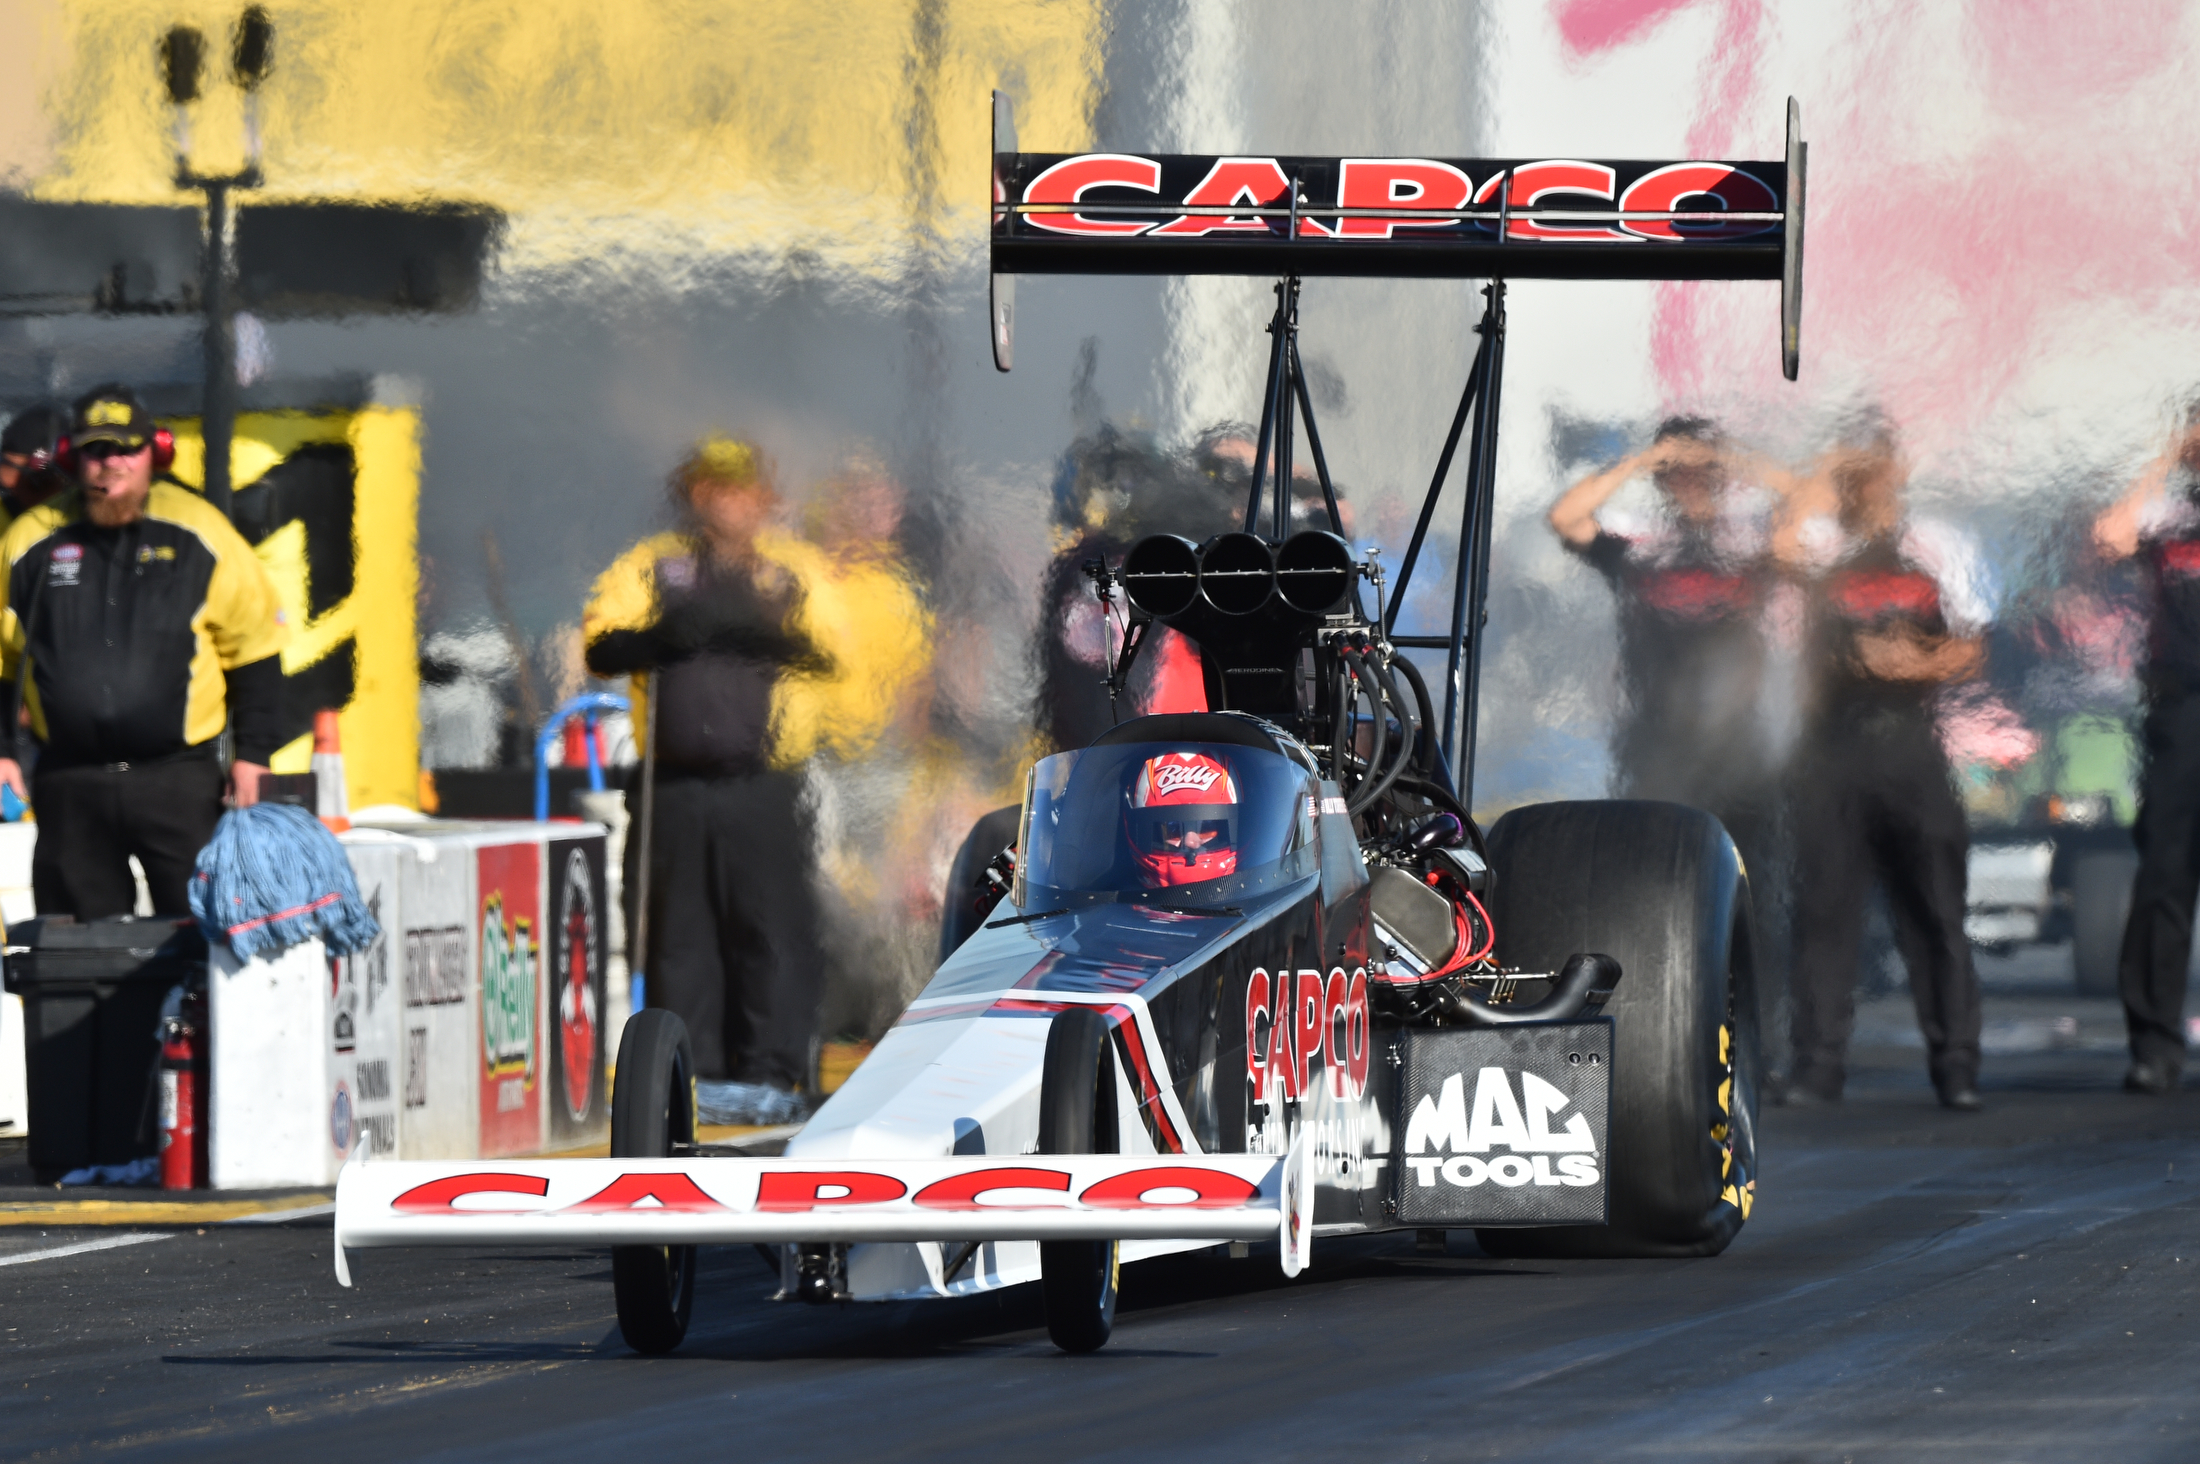 Top Fuel Dragster pilot Billy Torrence racing on Sunday at the 2019 Toyota NHRA Sonoma Nationals